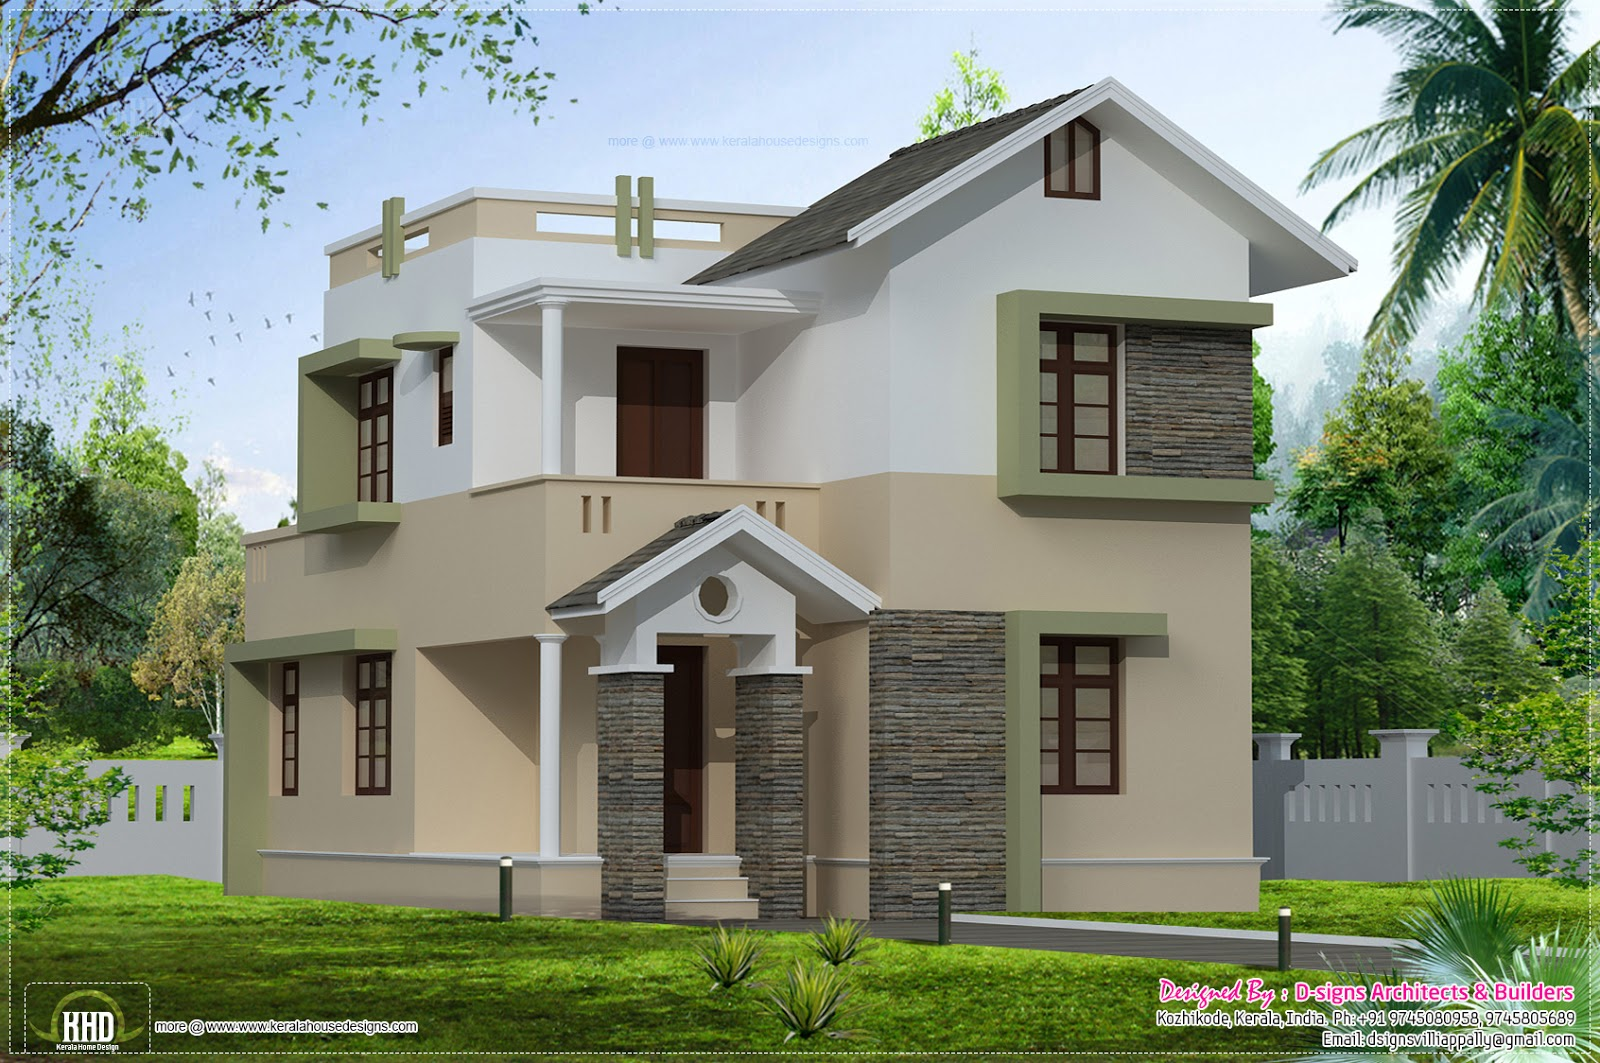 Inspiring small villa plan 21 photo house plans 3713 for House and design